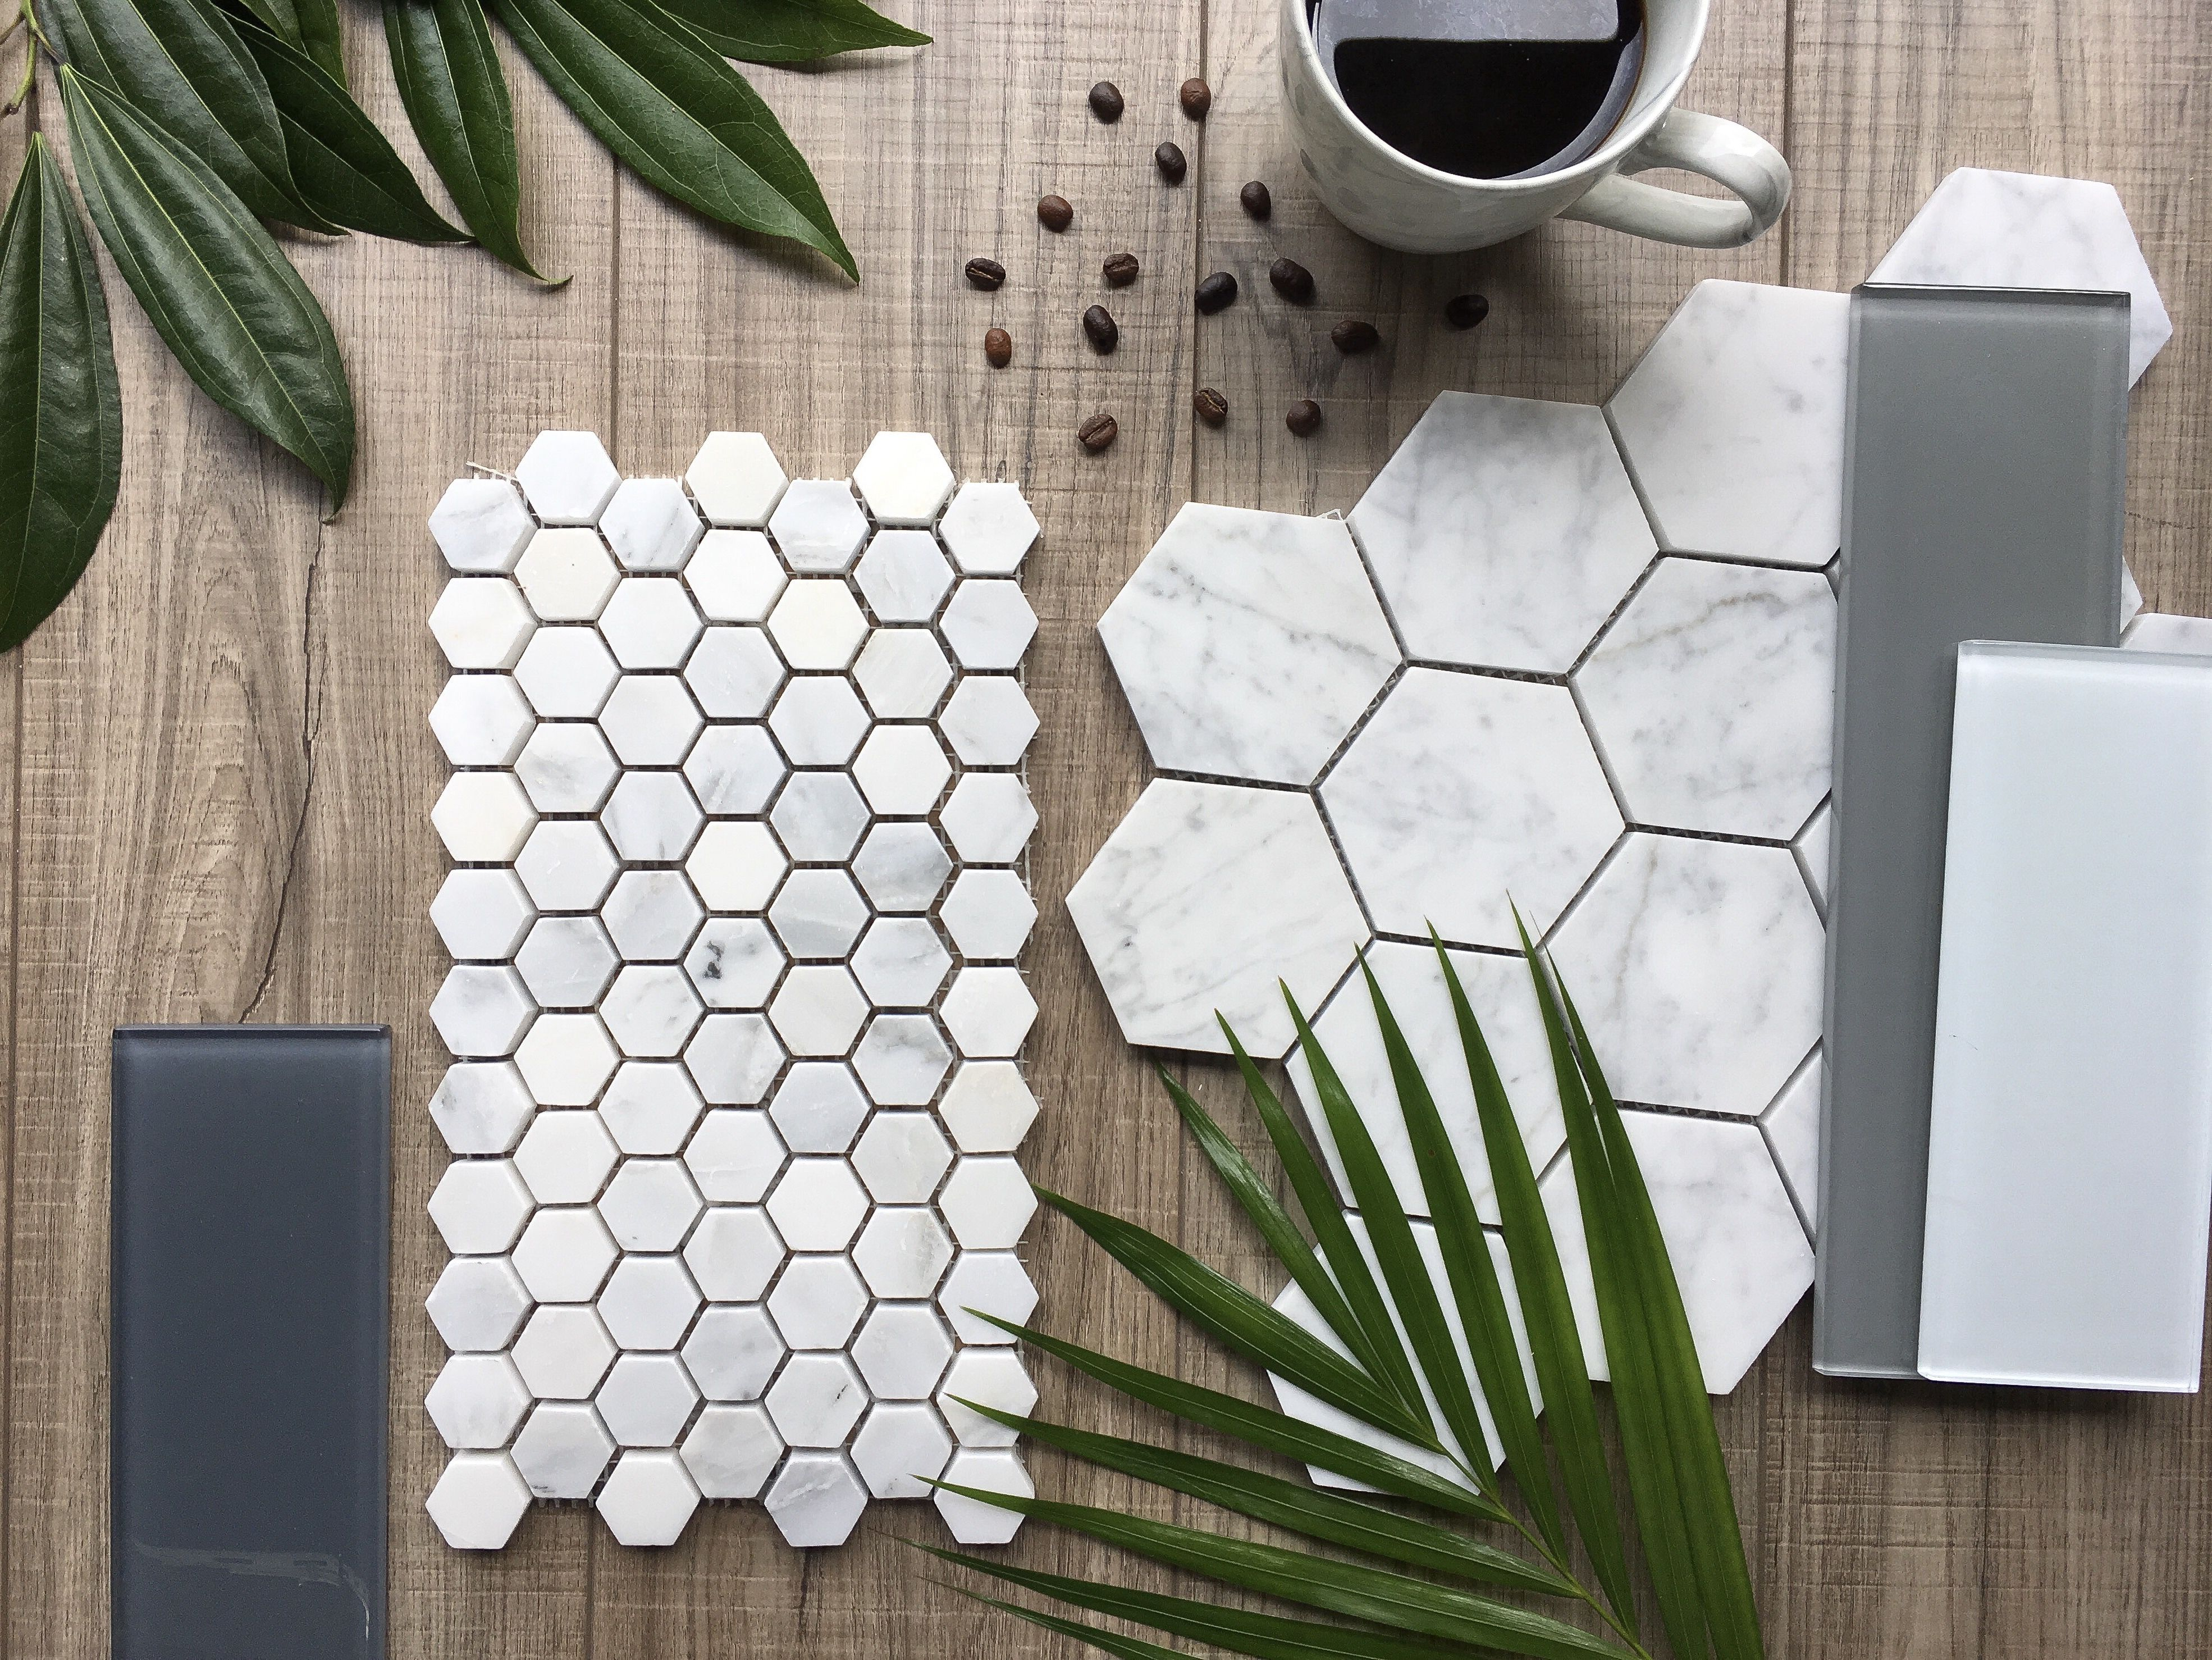 The Size Of Tile You Choose Can Greatly Affect The Feel Of Your - Choosing tile sizes for floors